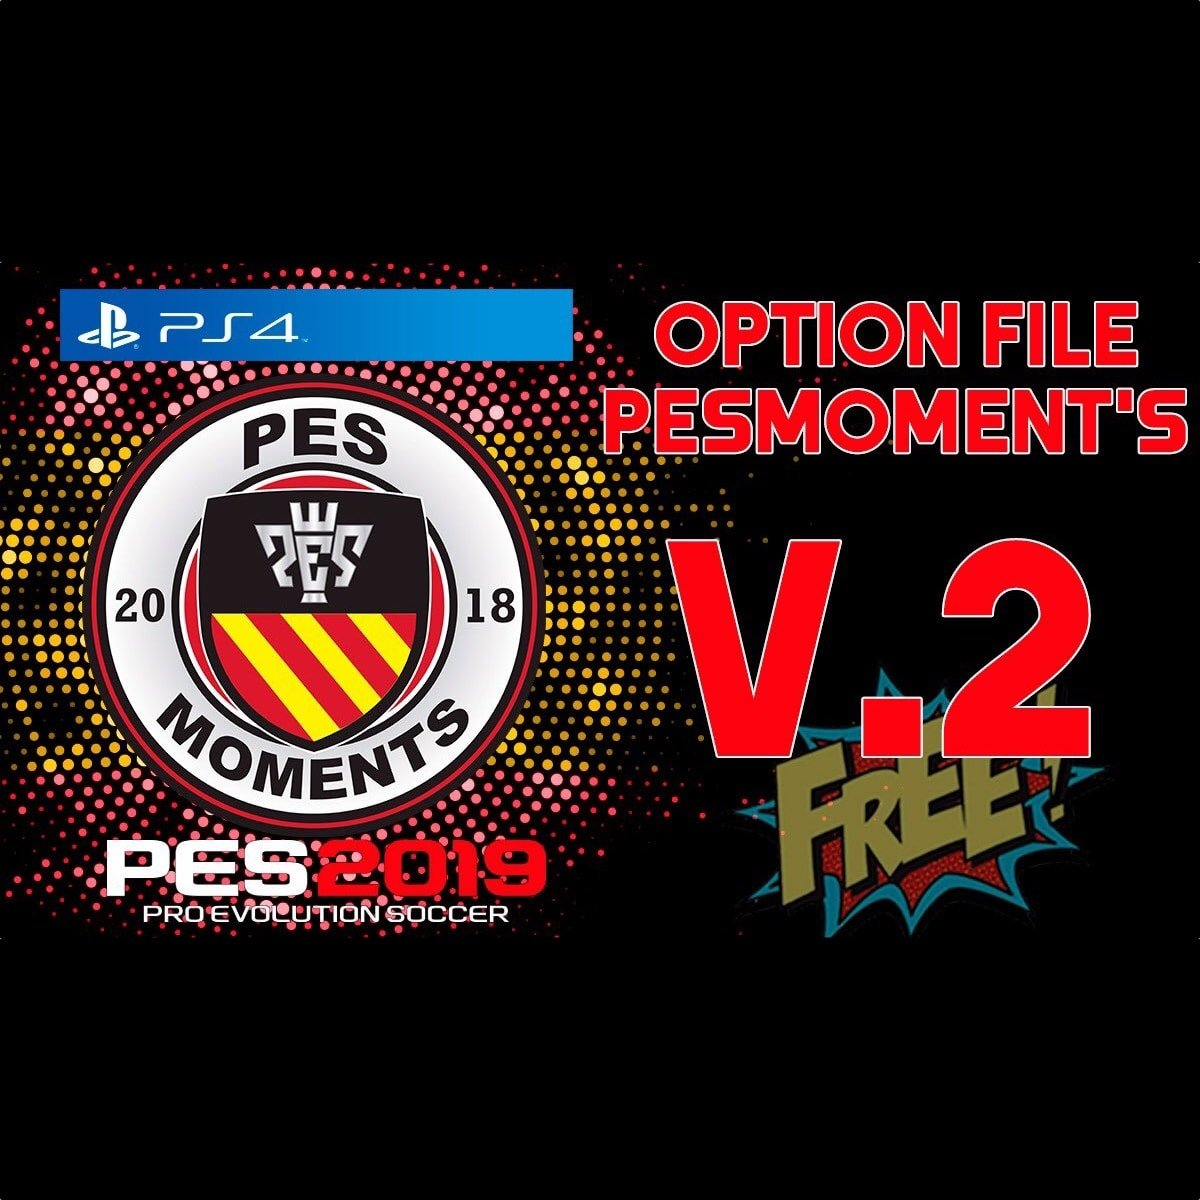 PES Moments Option File (PES 2019 PS4) - Parches y Option